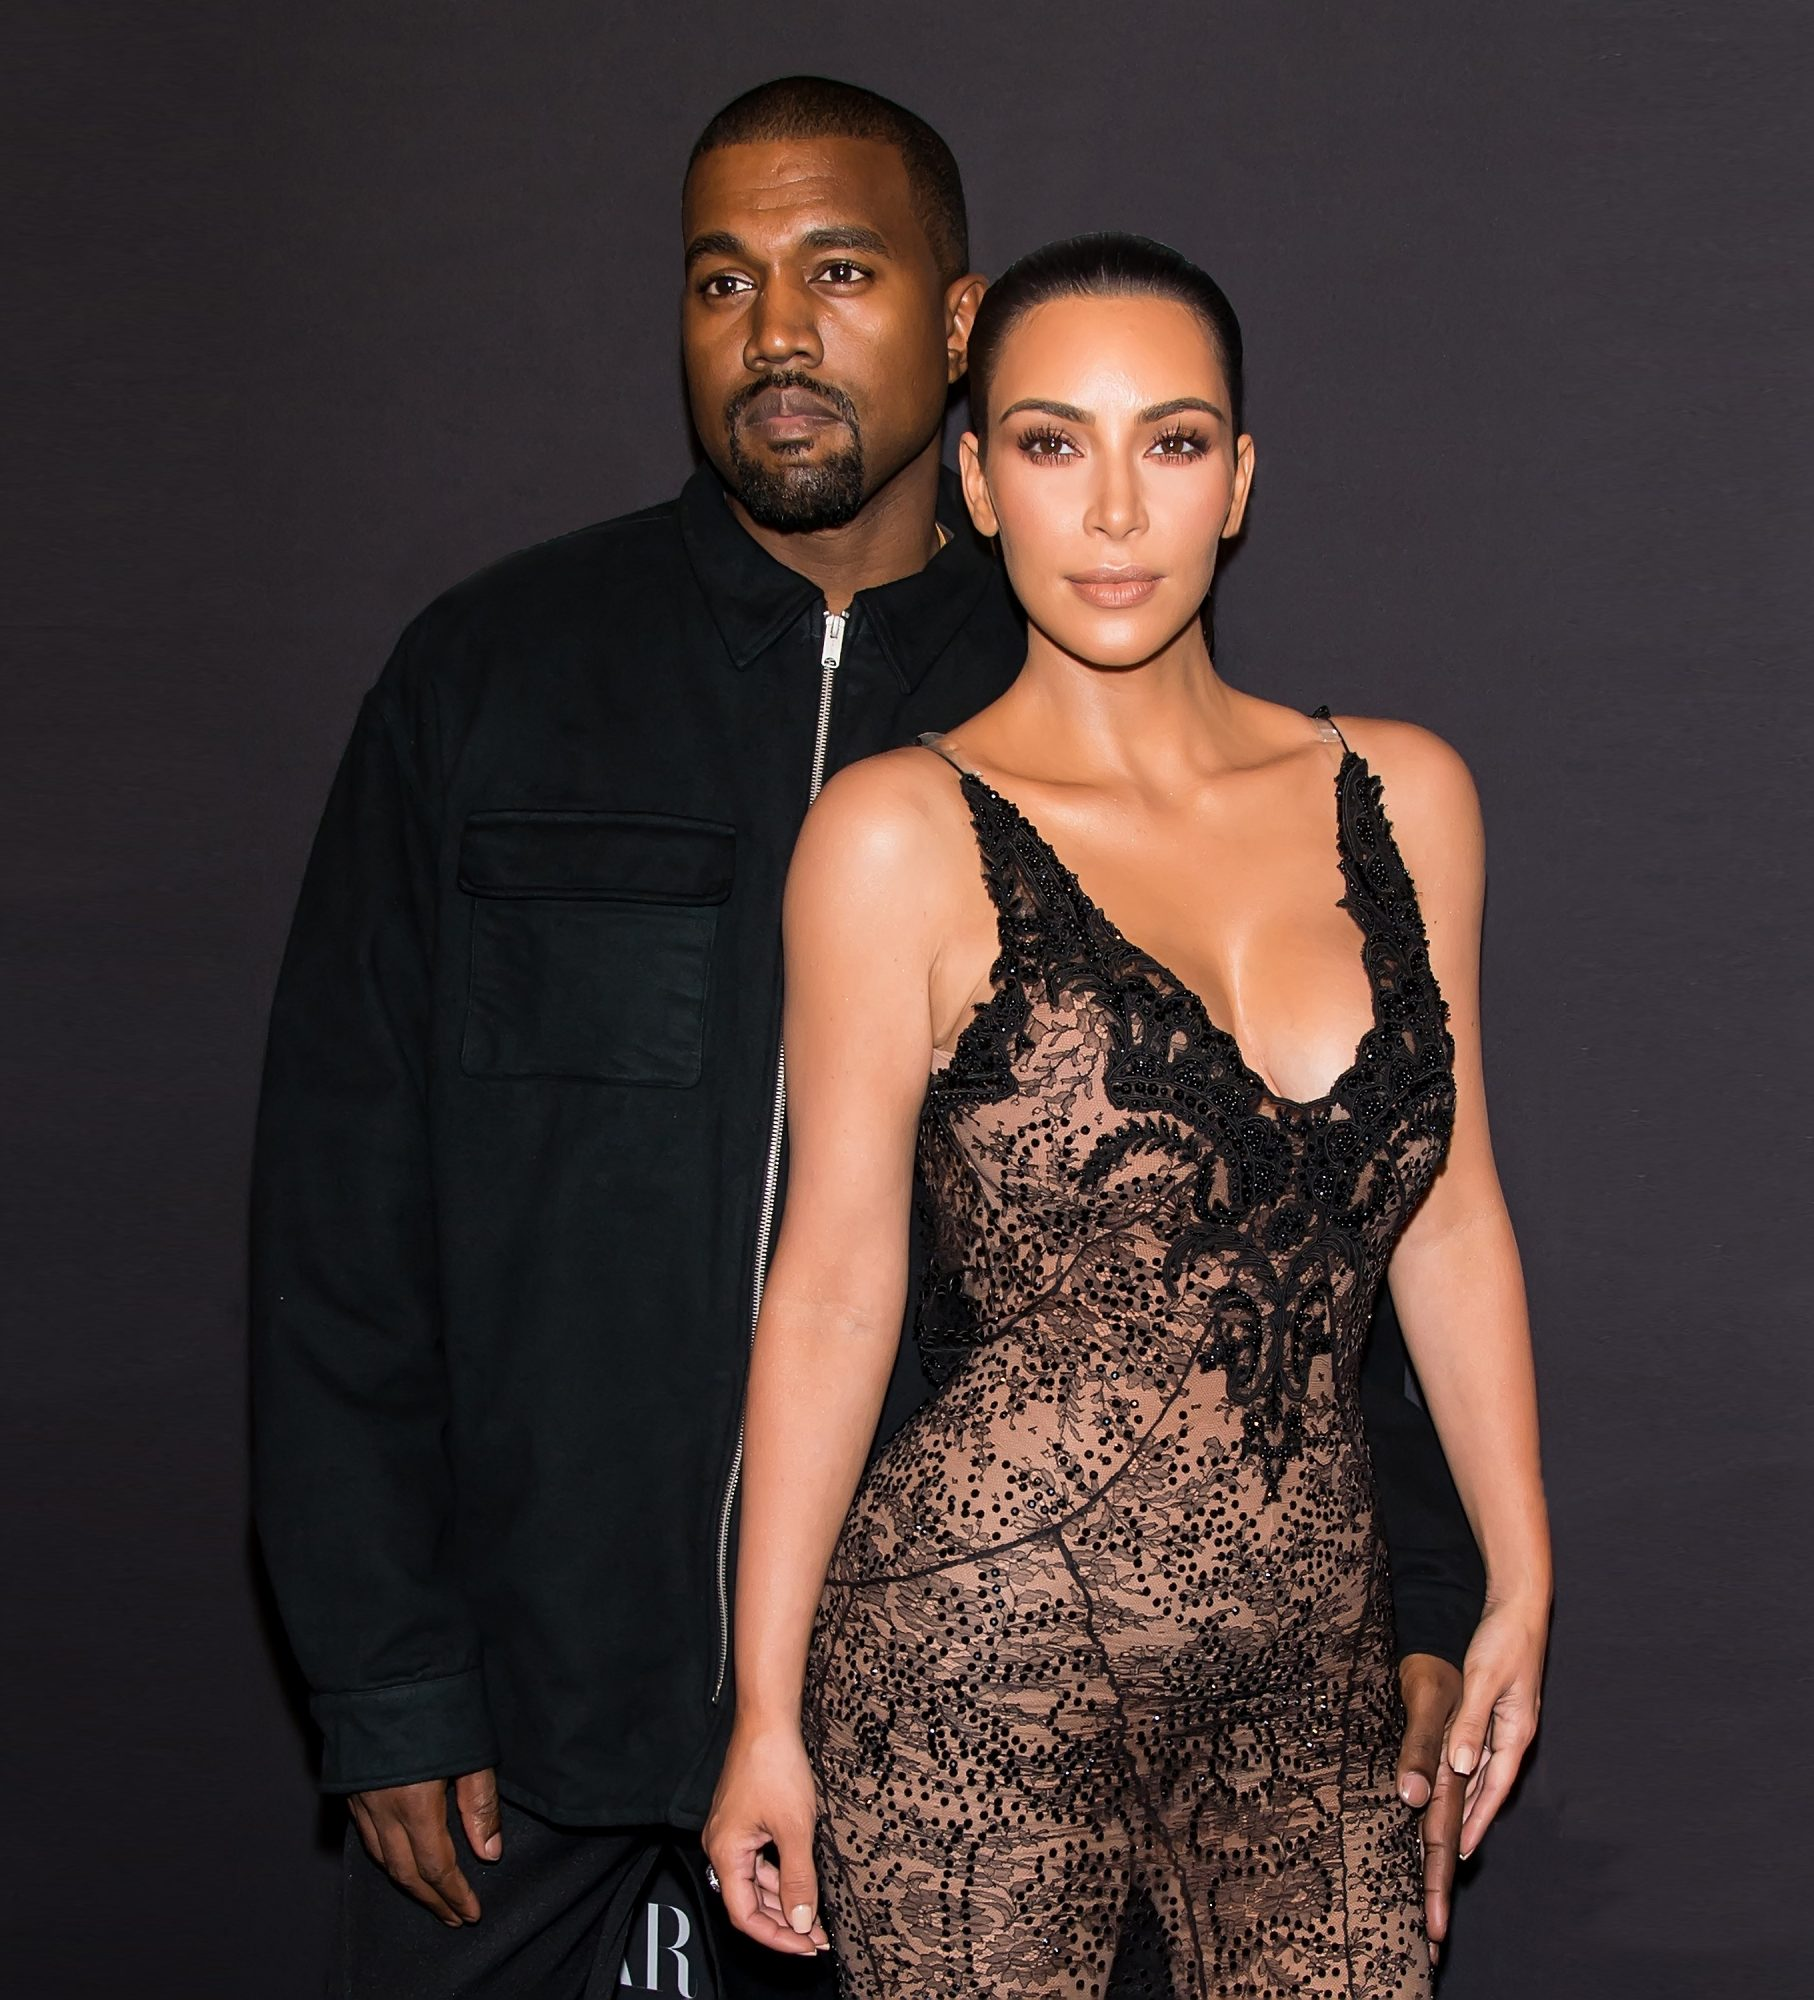 Kanye and Kim Kardashian West Reveal Daughter's Name Is Chicago